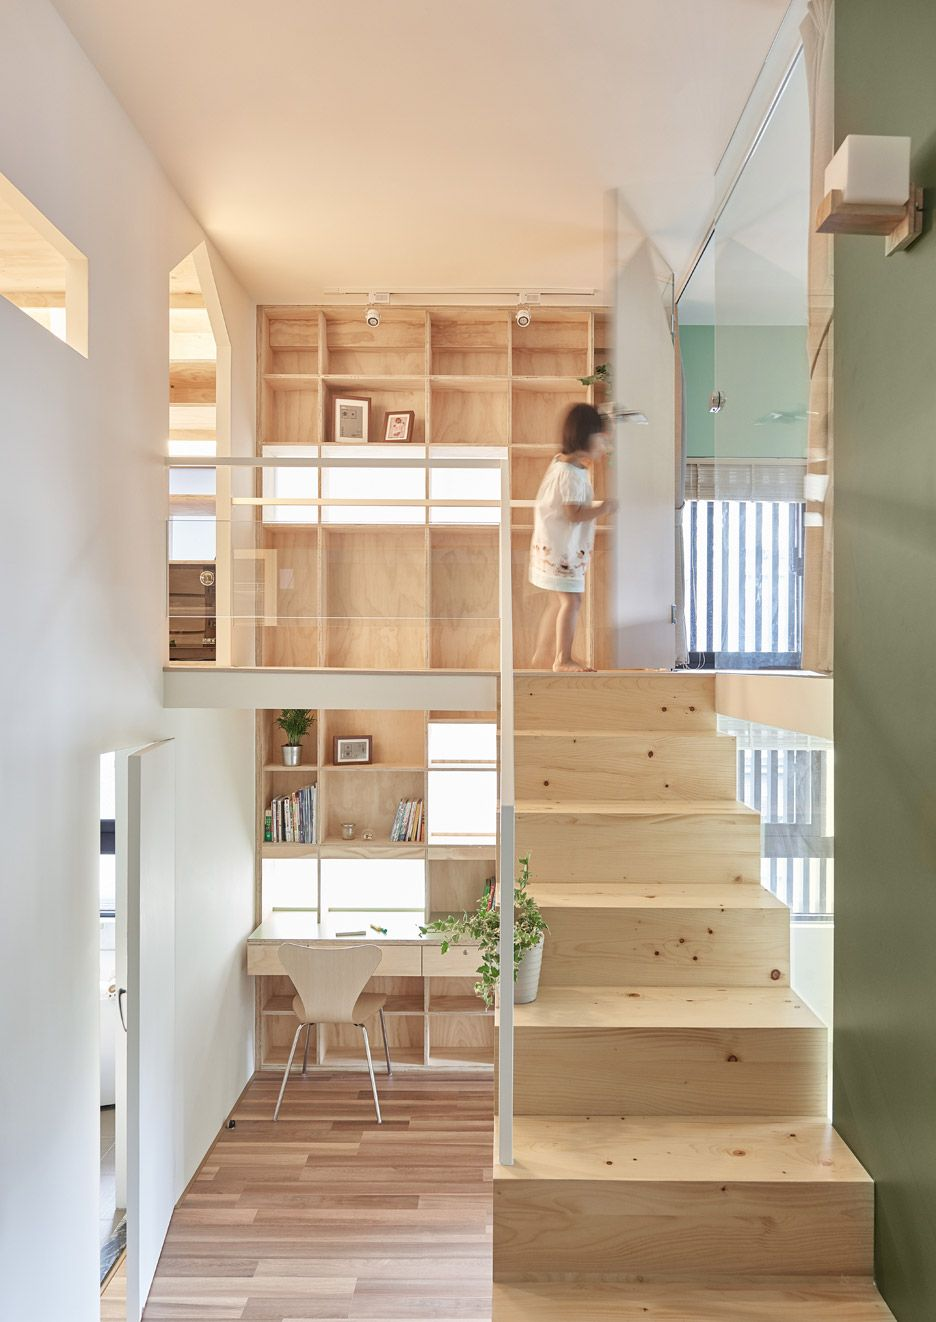 Apartment Renovation In Manhattan: Taiwan Apartment Renovation By Hao Design Includes A New